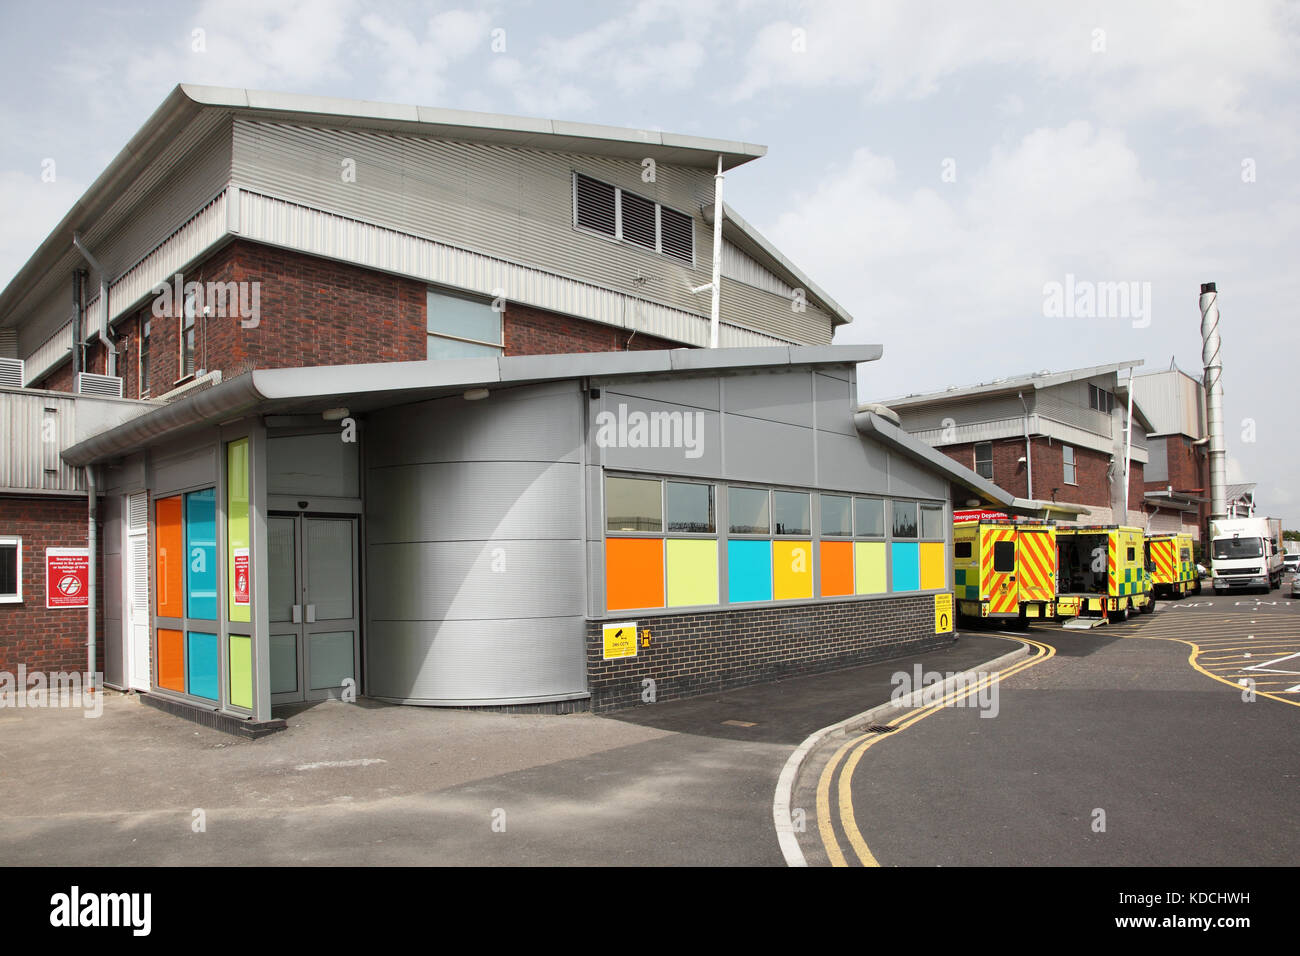 Exterior of the new Accident and Emergency Department at